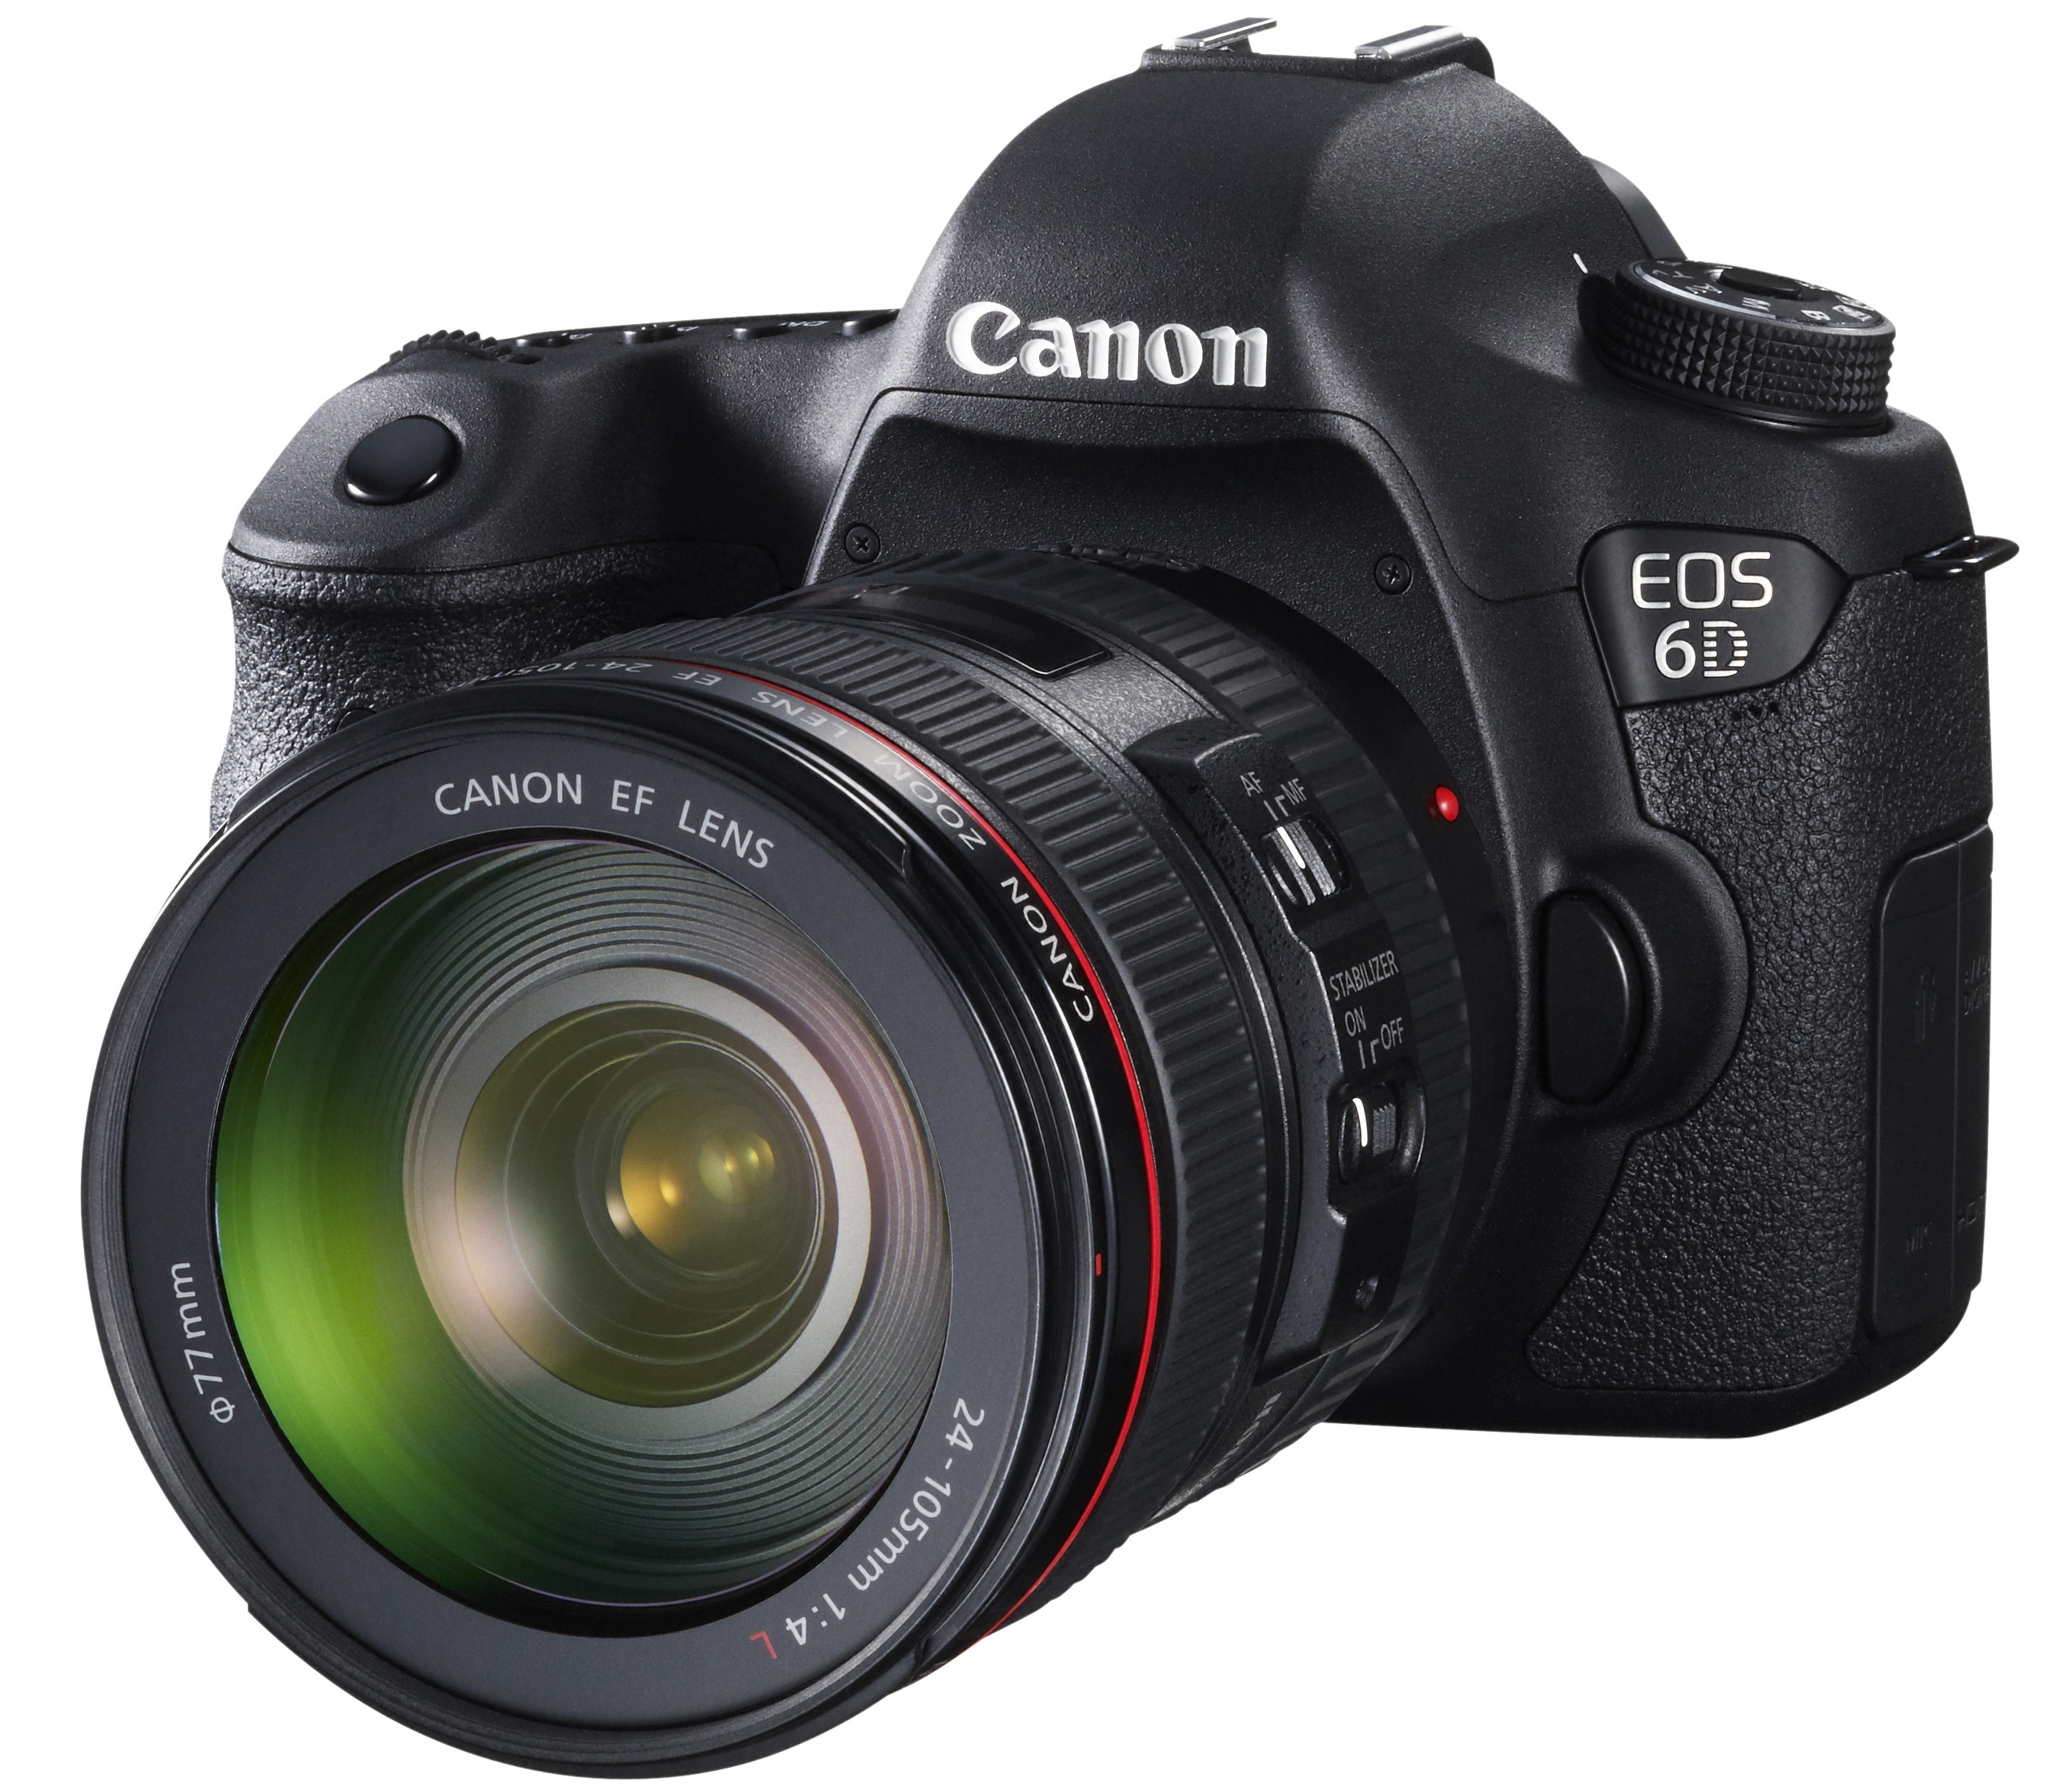 The new Canon EOS 6D full-frame DSLR: a miss for video journalists ...